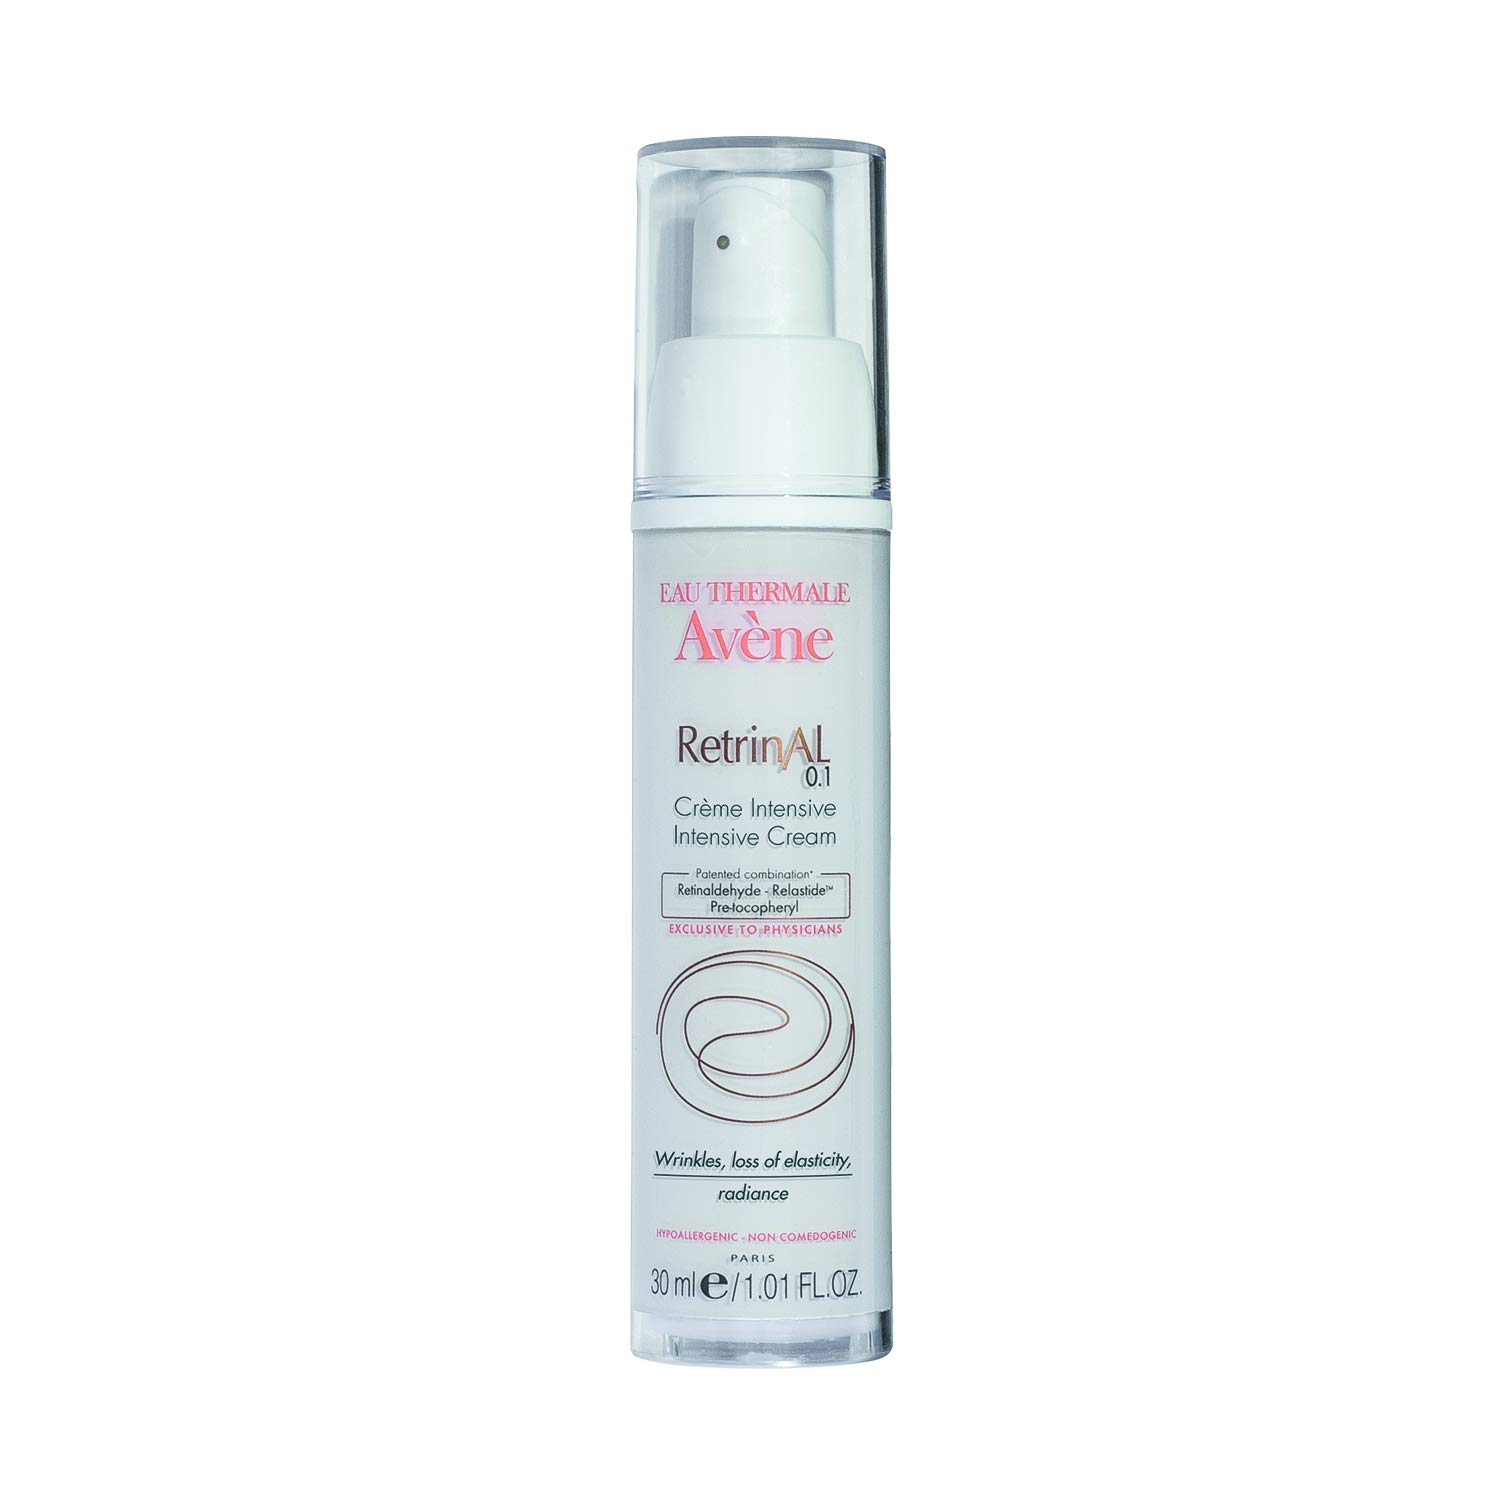 Eau Thermale Avene RetrinAL 0.1 Intensive Cream, Retinaldehyde, Reduce Signs of Aging, Brighten & Rejuvenate Skin, 1.01 oz.